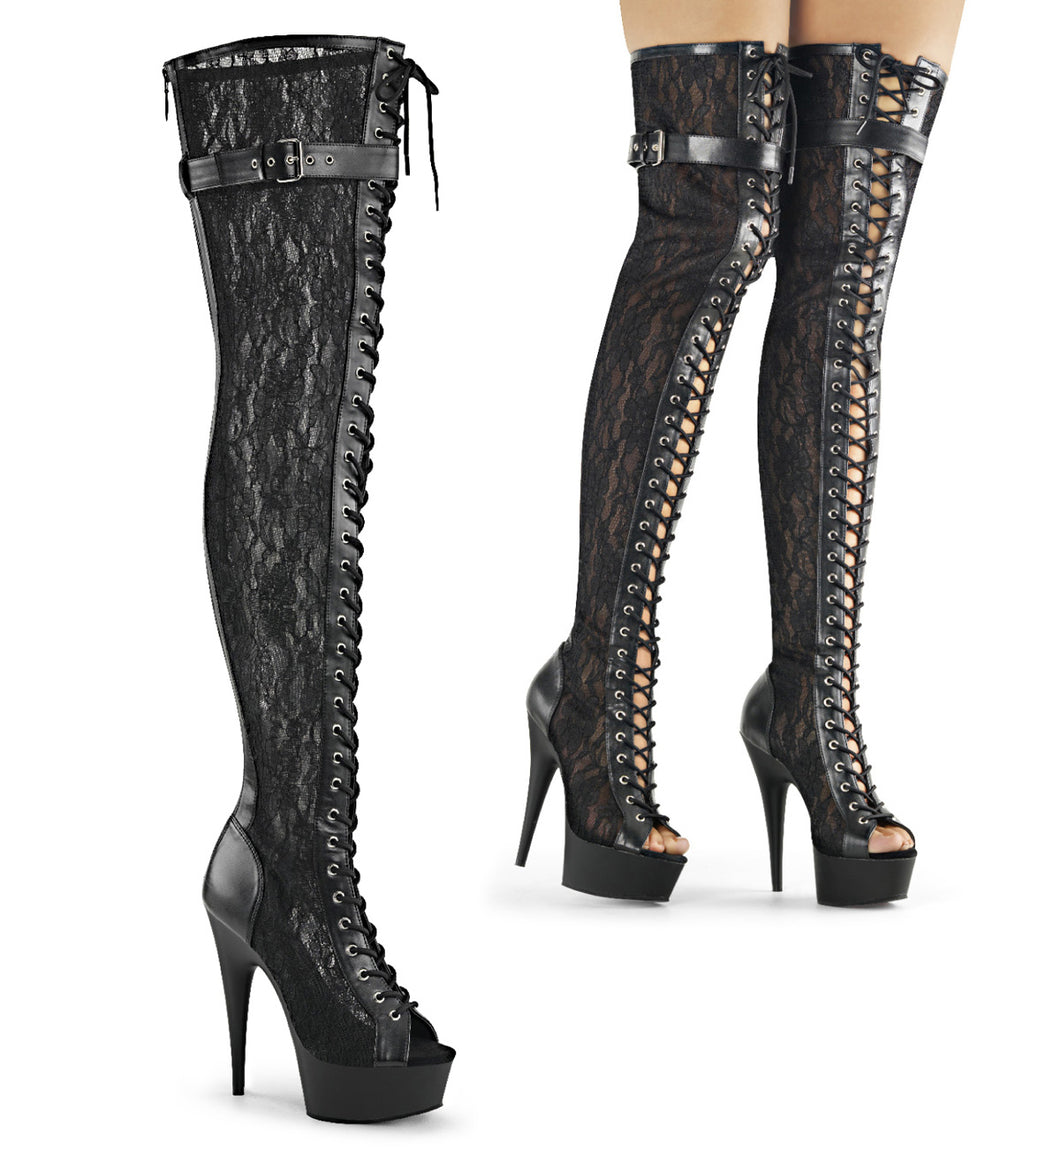 DELIGHT-3025ML Pleaser Sexy Shoes 6 Inch Lace-Up Stretch Platforms Lace Thigh High Boots